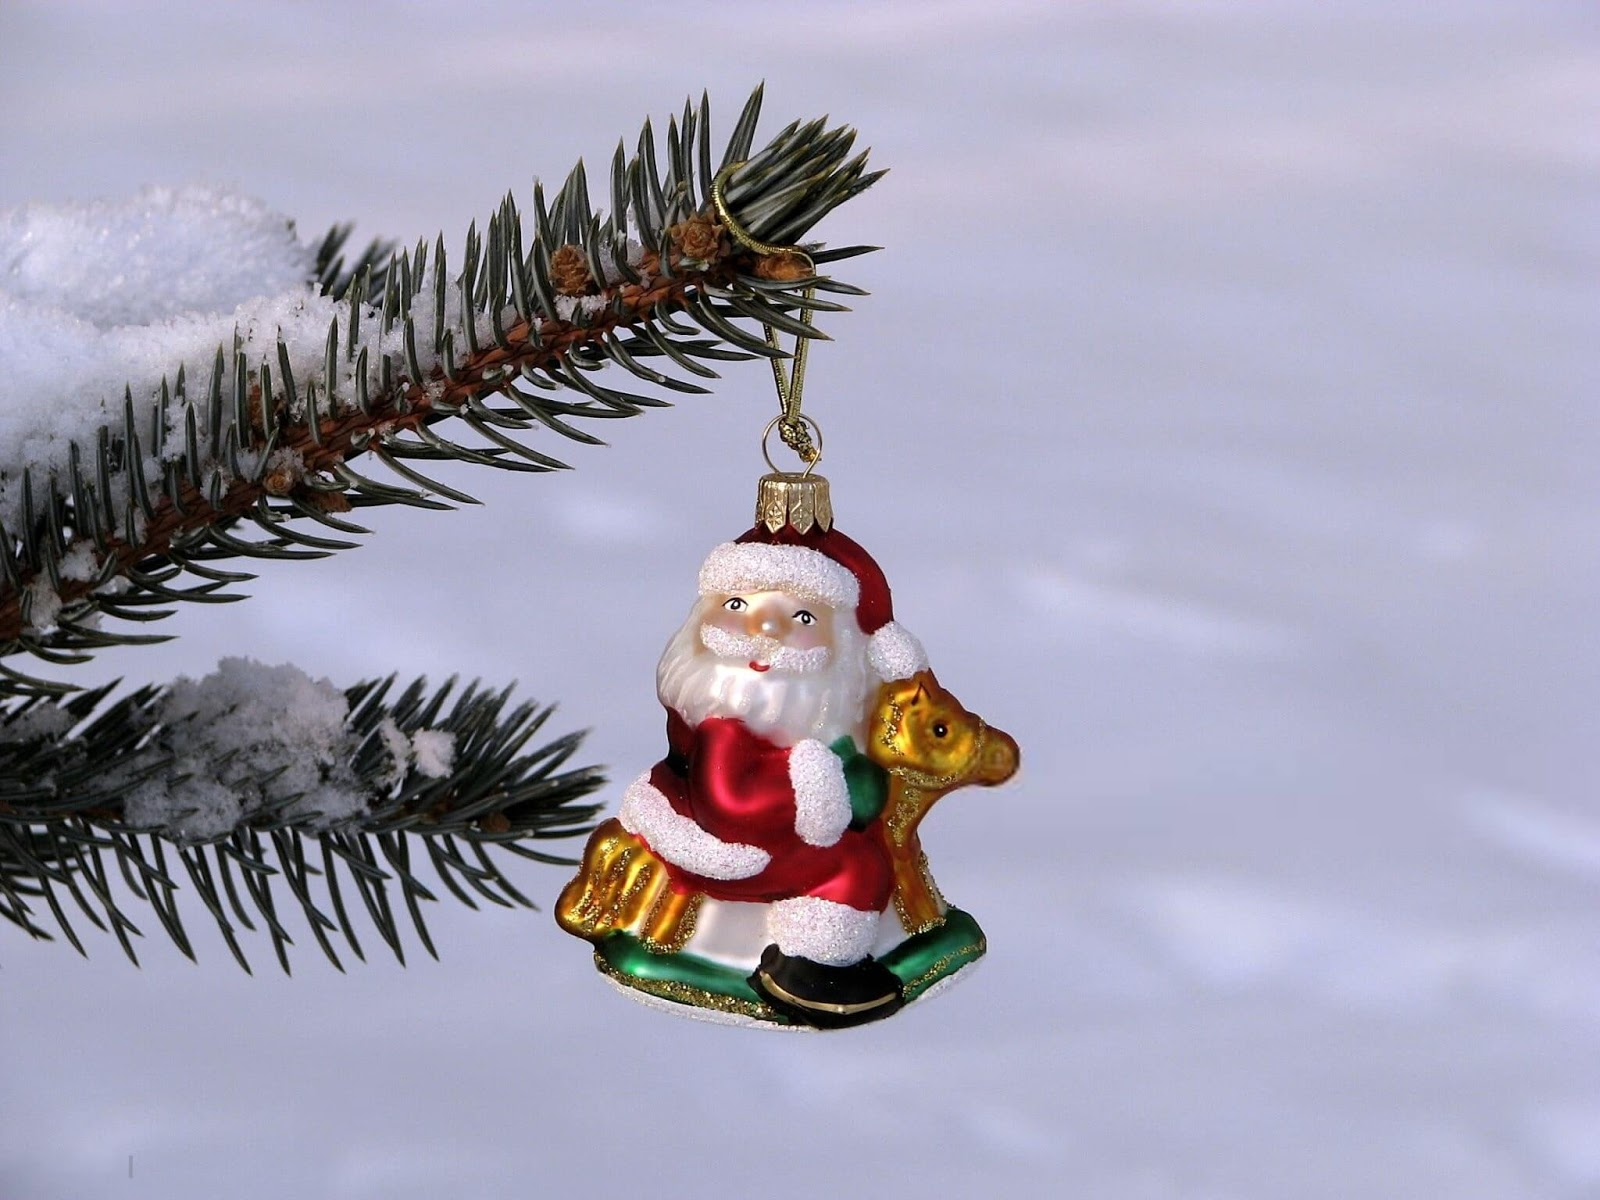 Images of Christmas Decorations